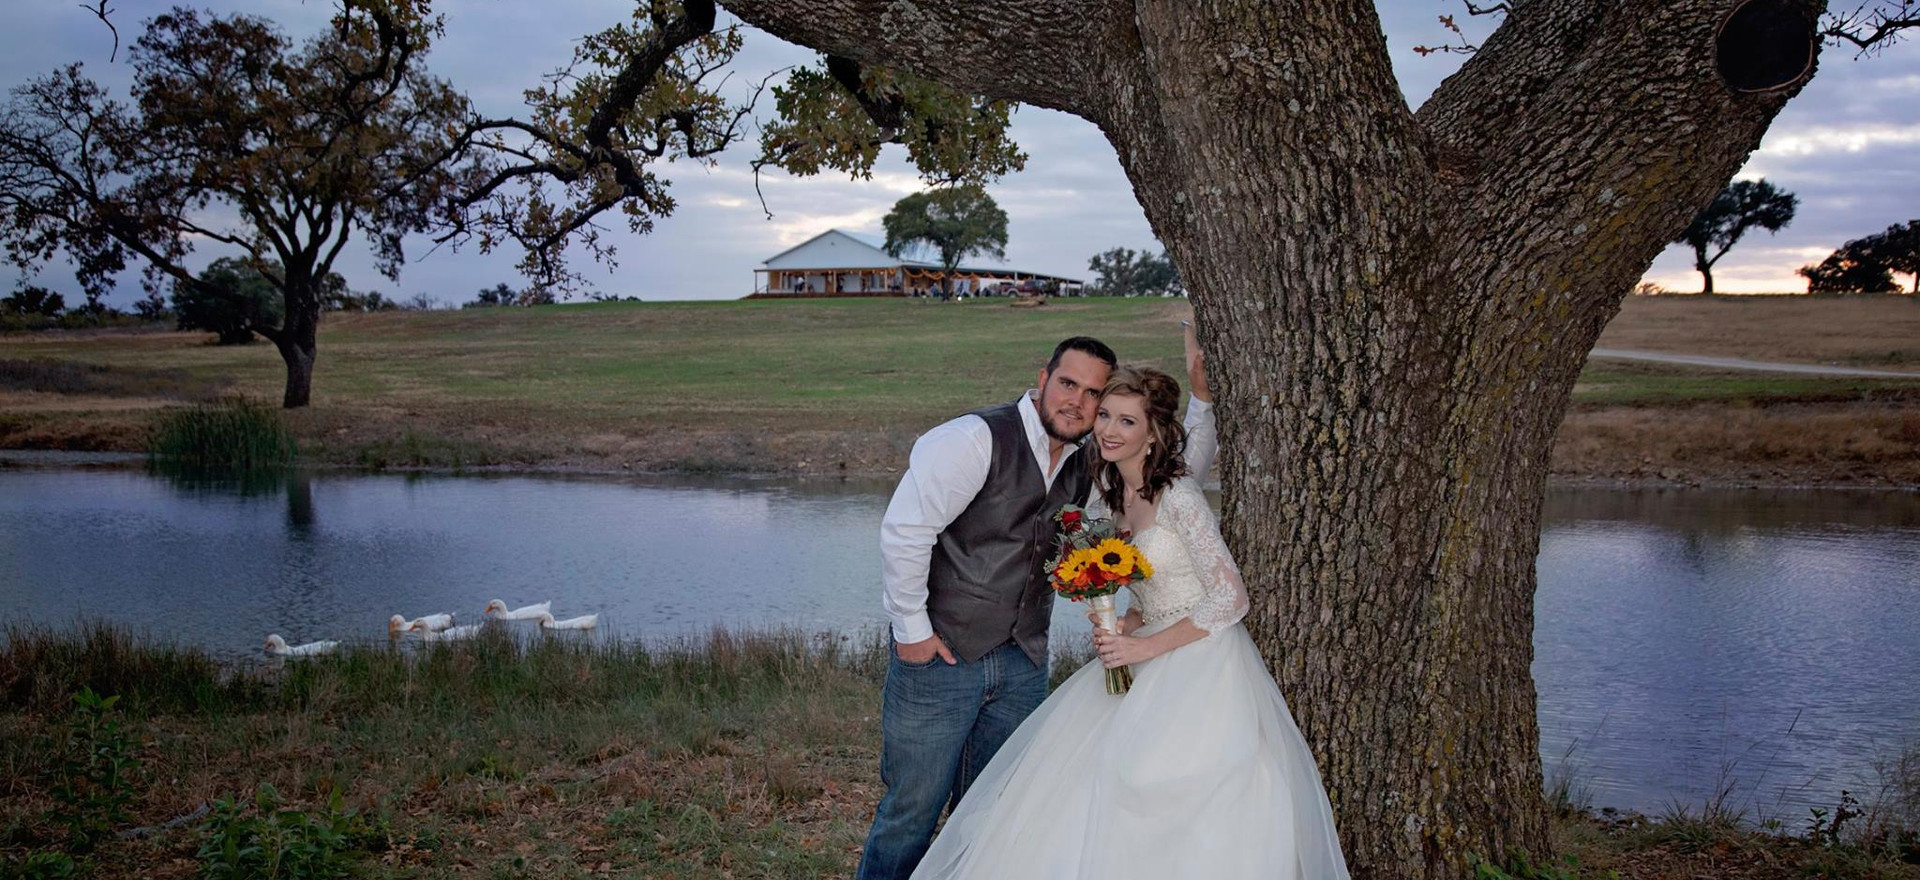 Gorgeous Texas Wedding Venue